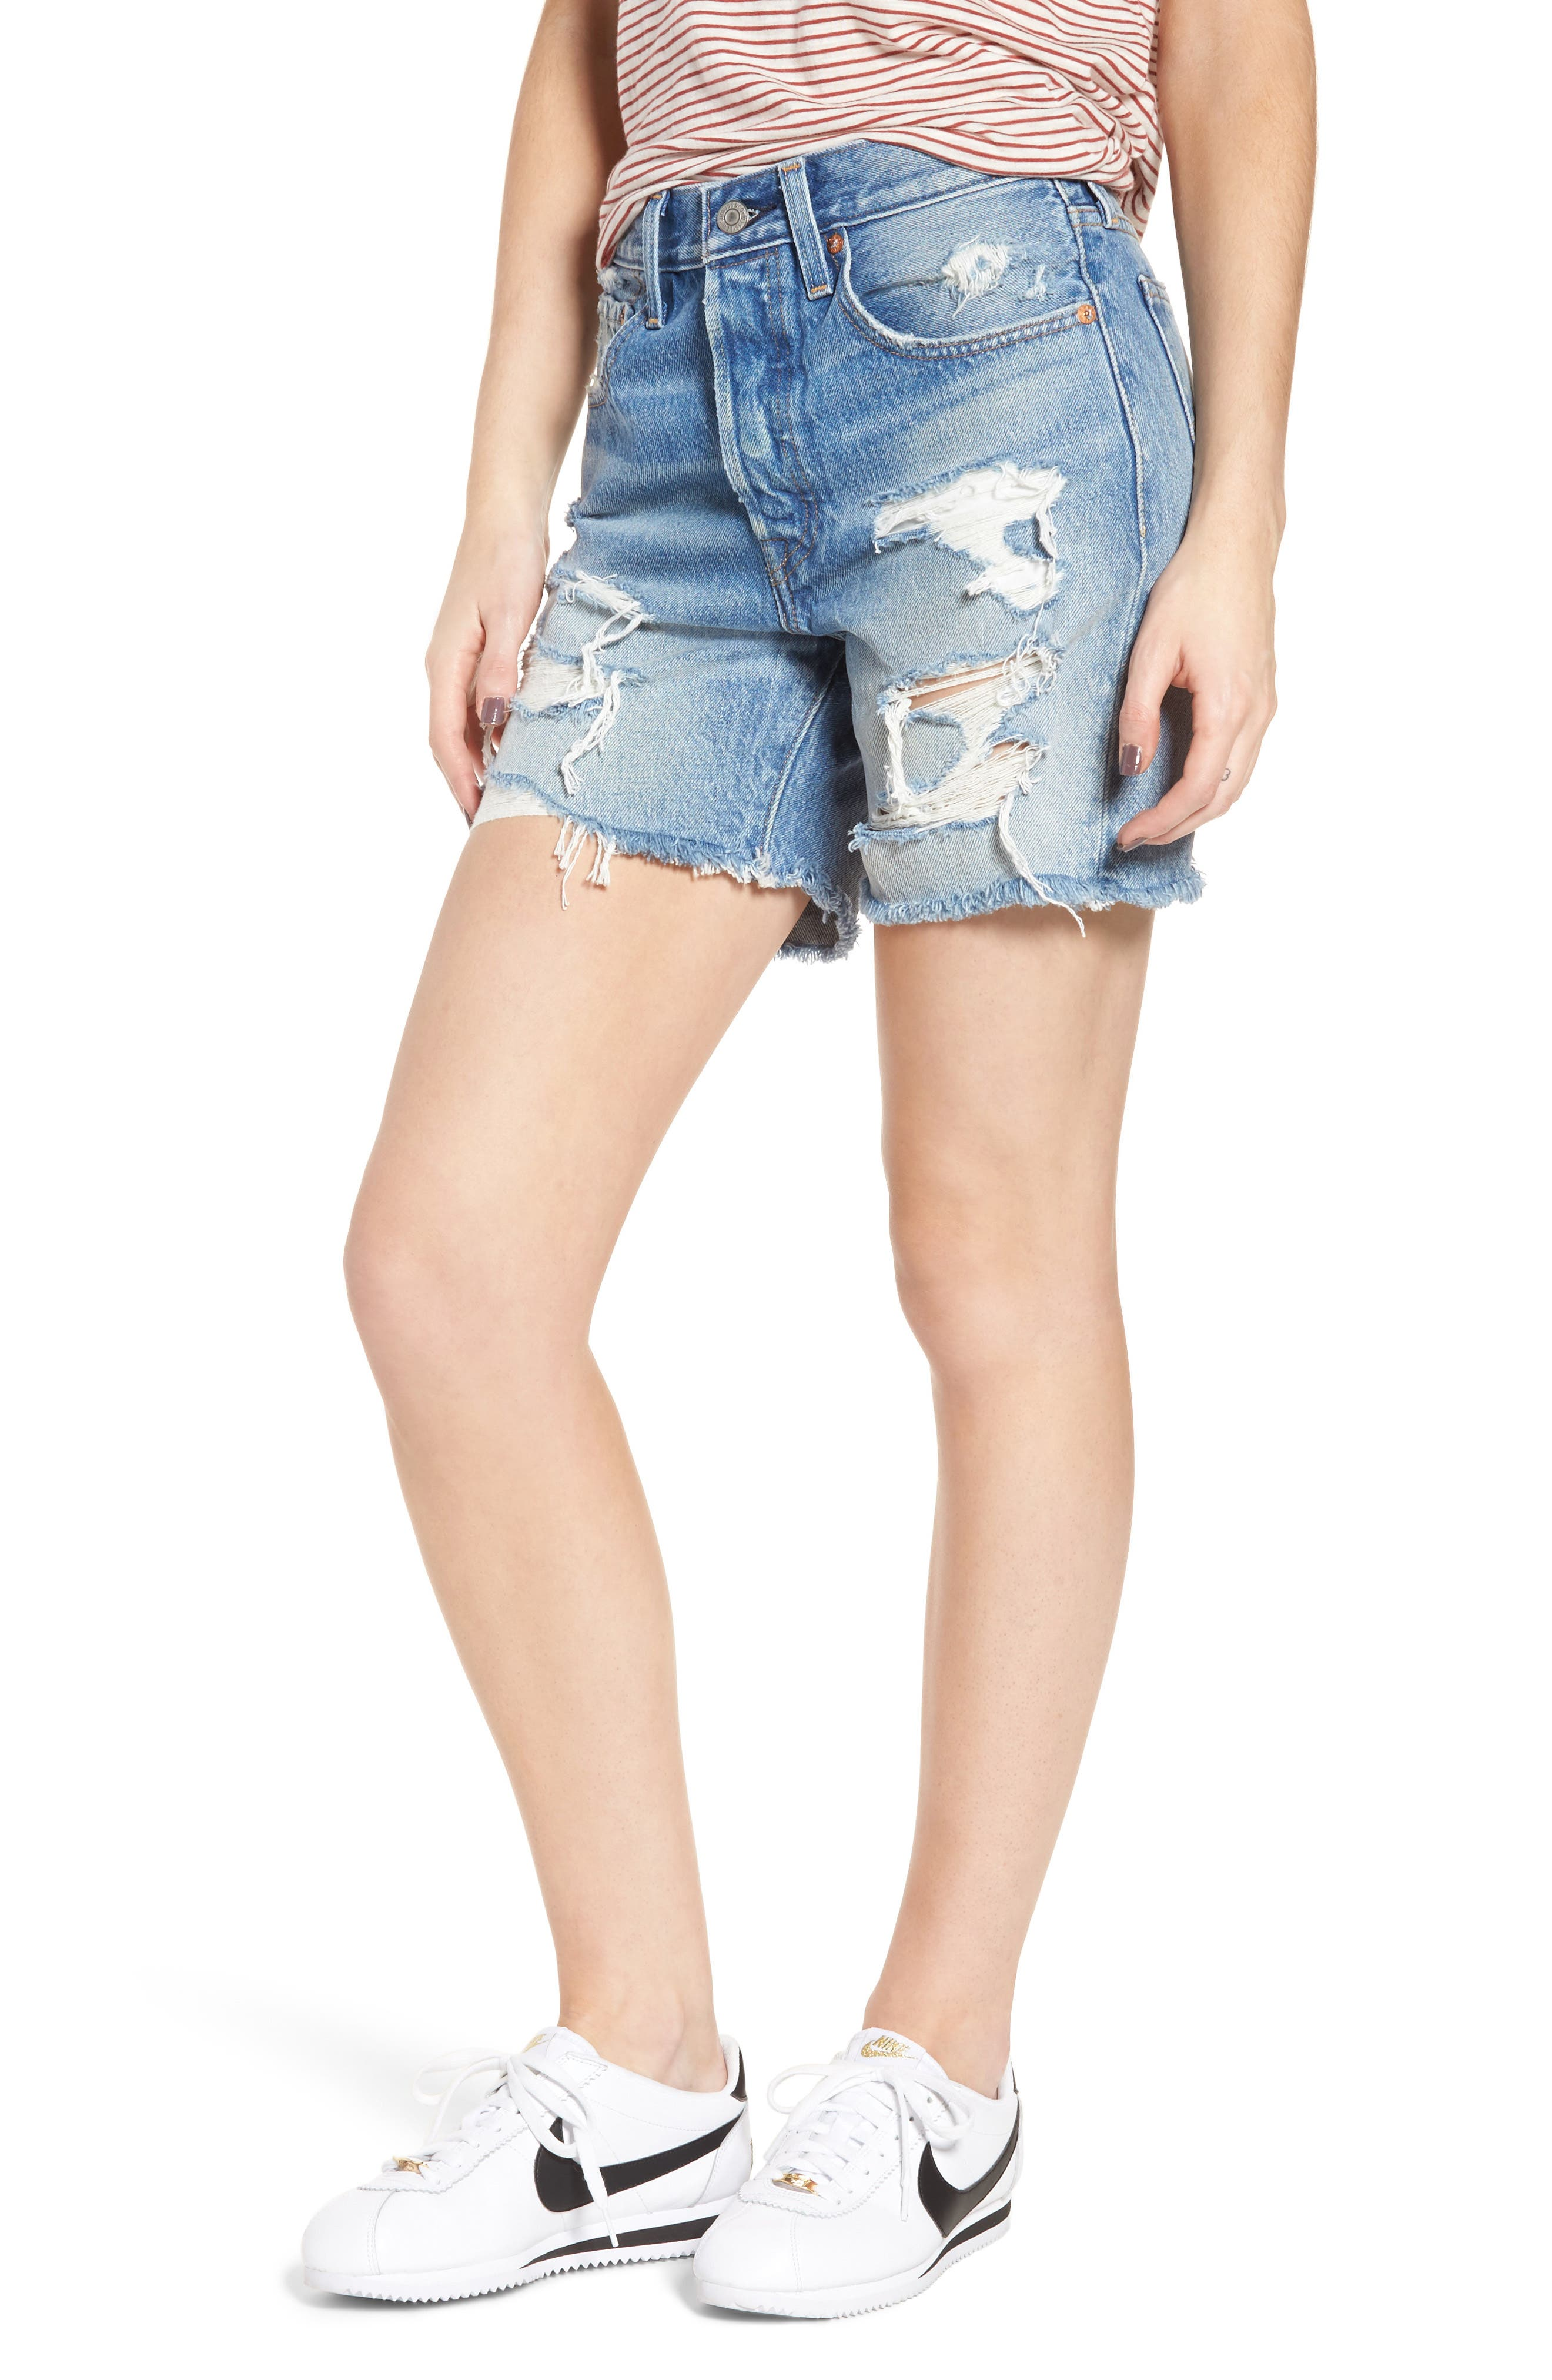 Discussion on this topic: Shop It Right Now: Cool Denim Shorts , shop-it-right-now-cool-denim-shorts/